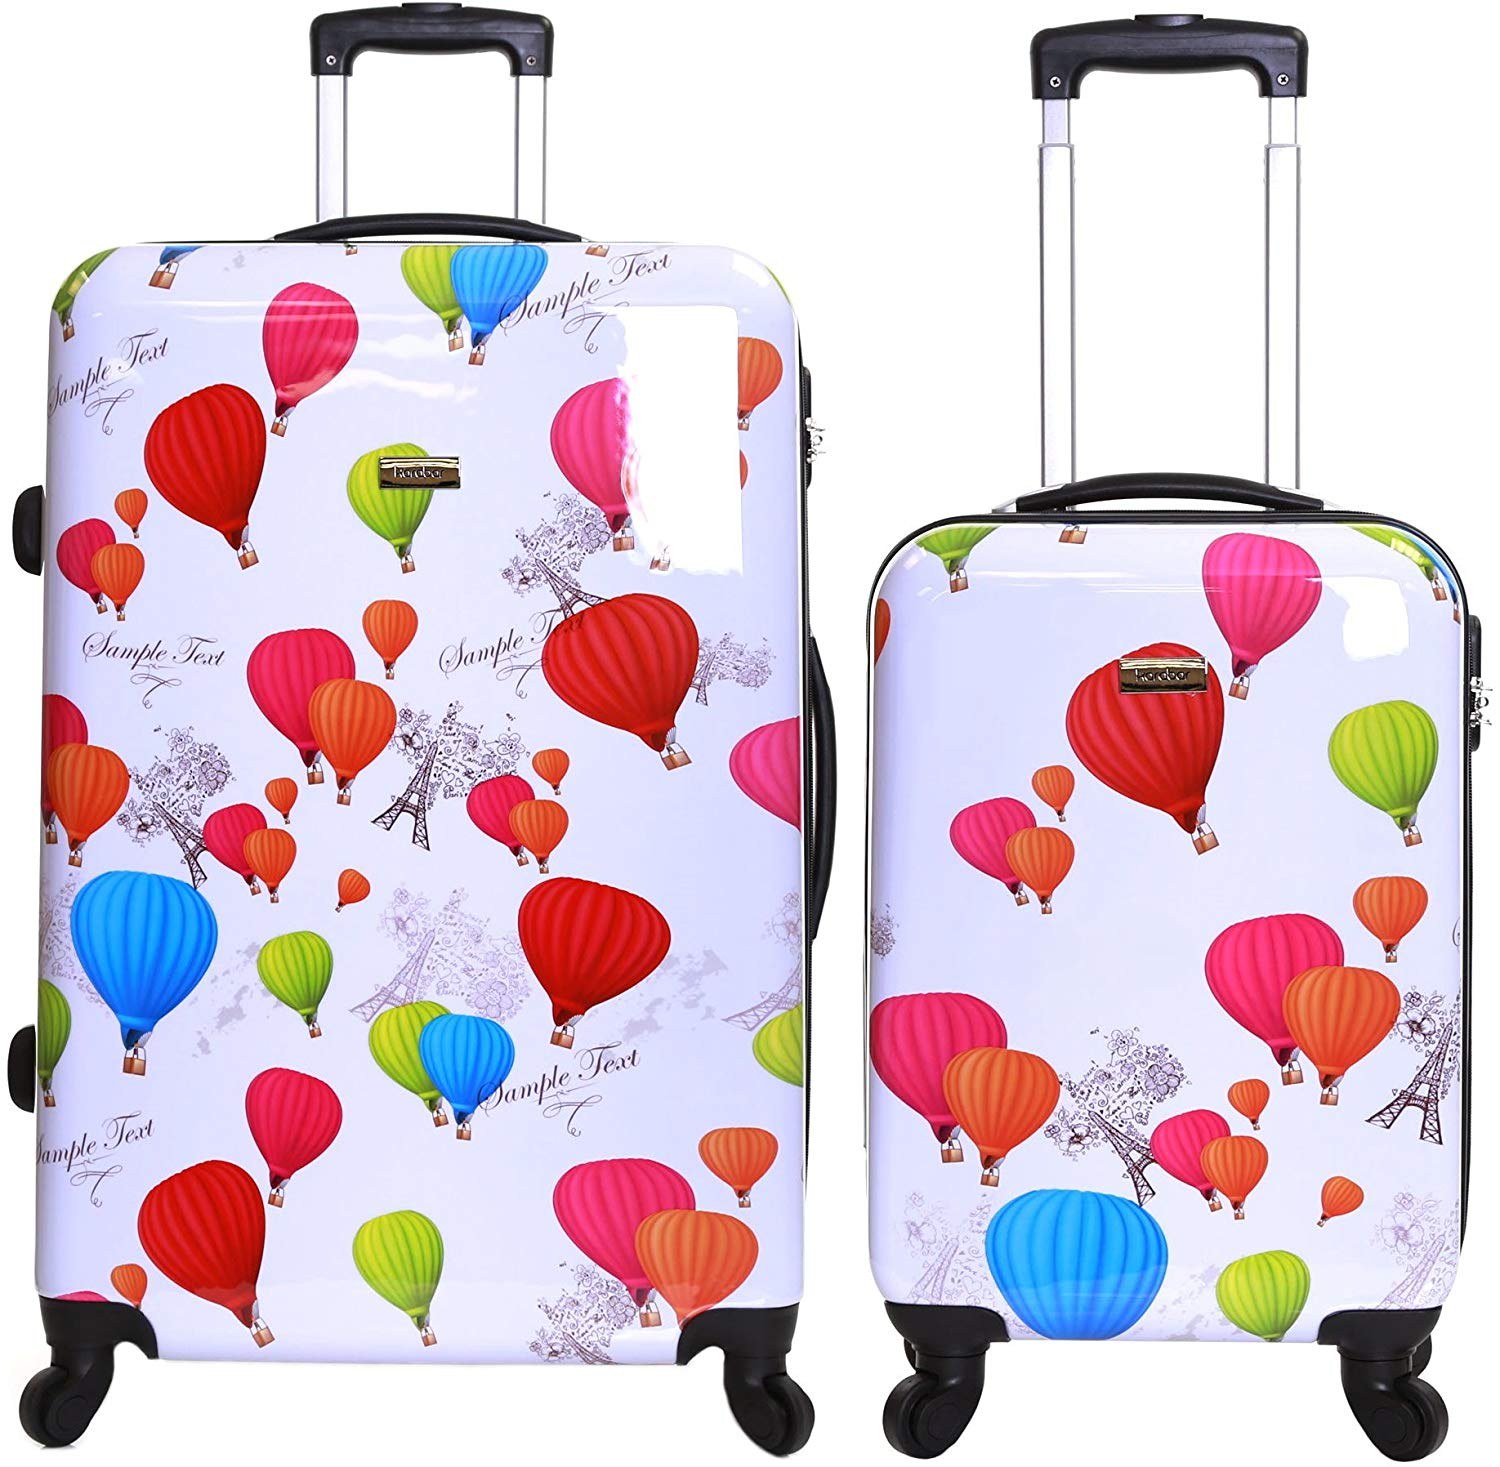 Karabar Set of 2 Hard Shell Polycarbonate Suitcases Luggage Bag